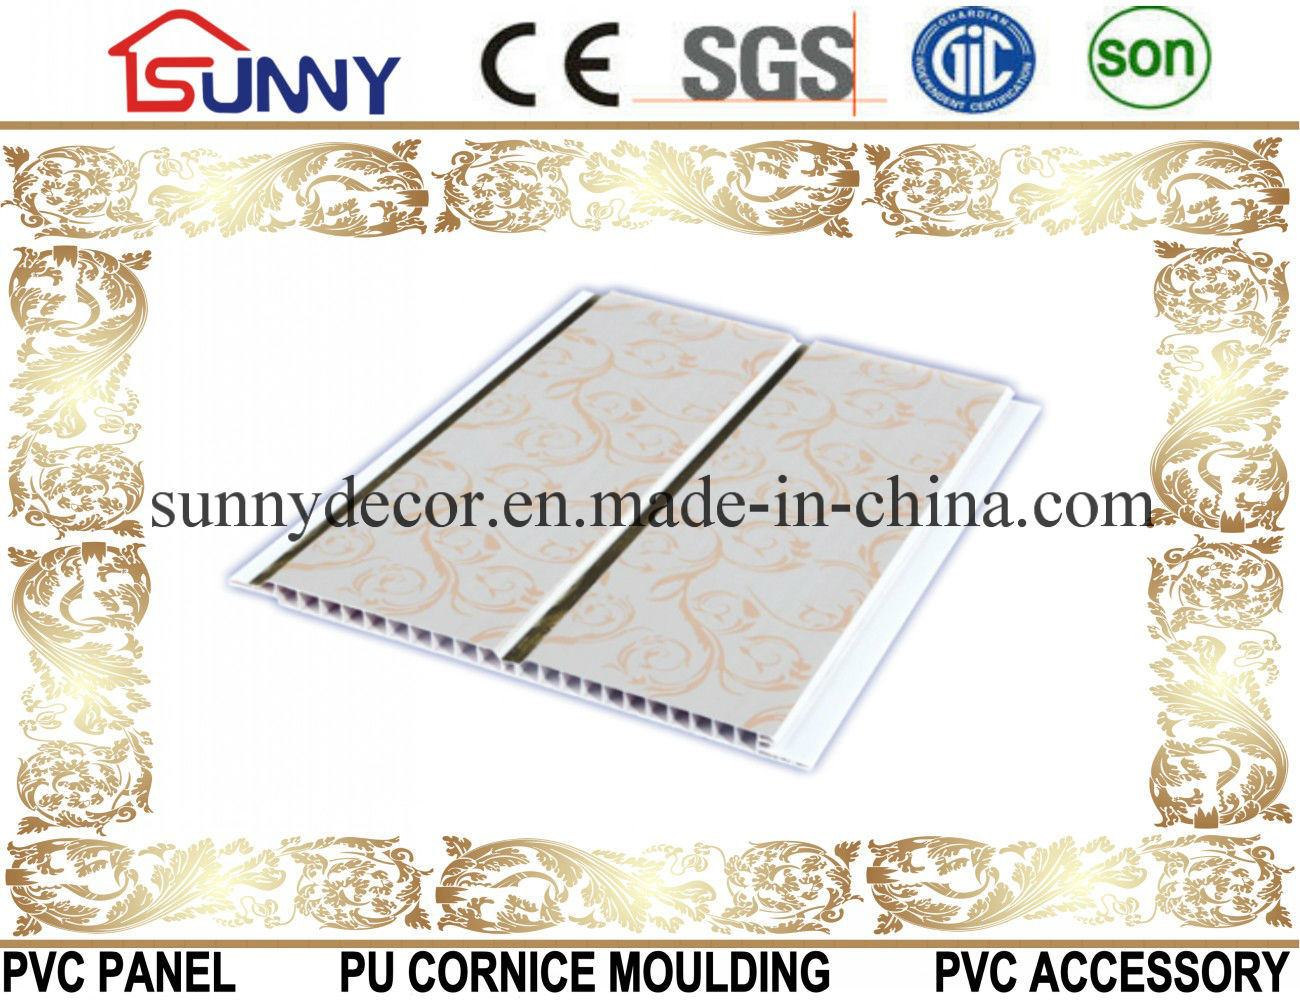 High Quality PVC Printing Panels /PVC Printing Ceiling Wall Panel Made in China